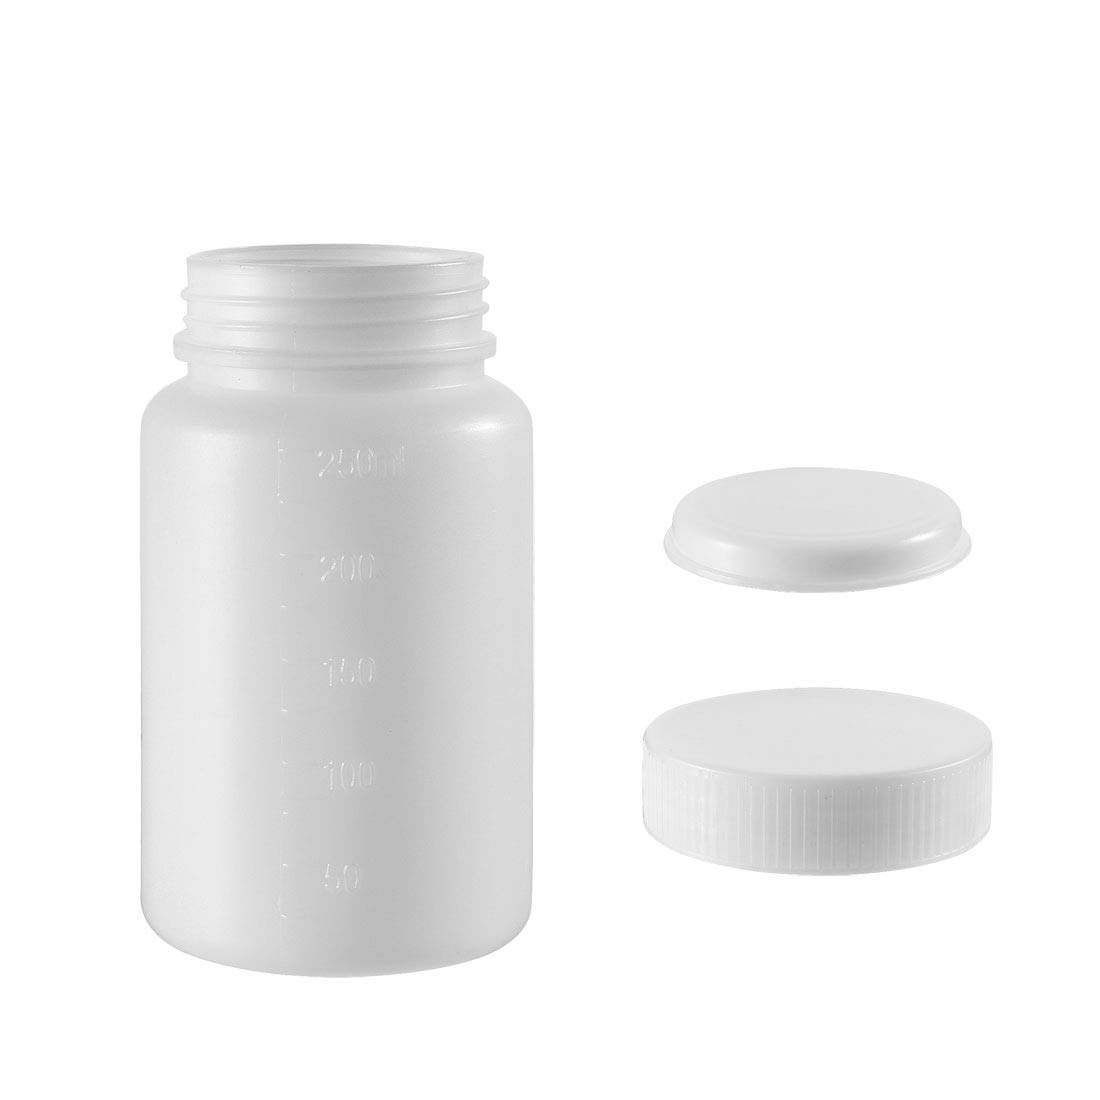 uxcell Plastic Lab Chemical Reagent Bottle 250ml/8.5oz Wide Mouth Sample Sealing Liquid Storage Container